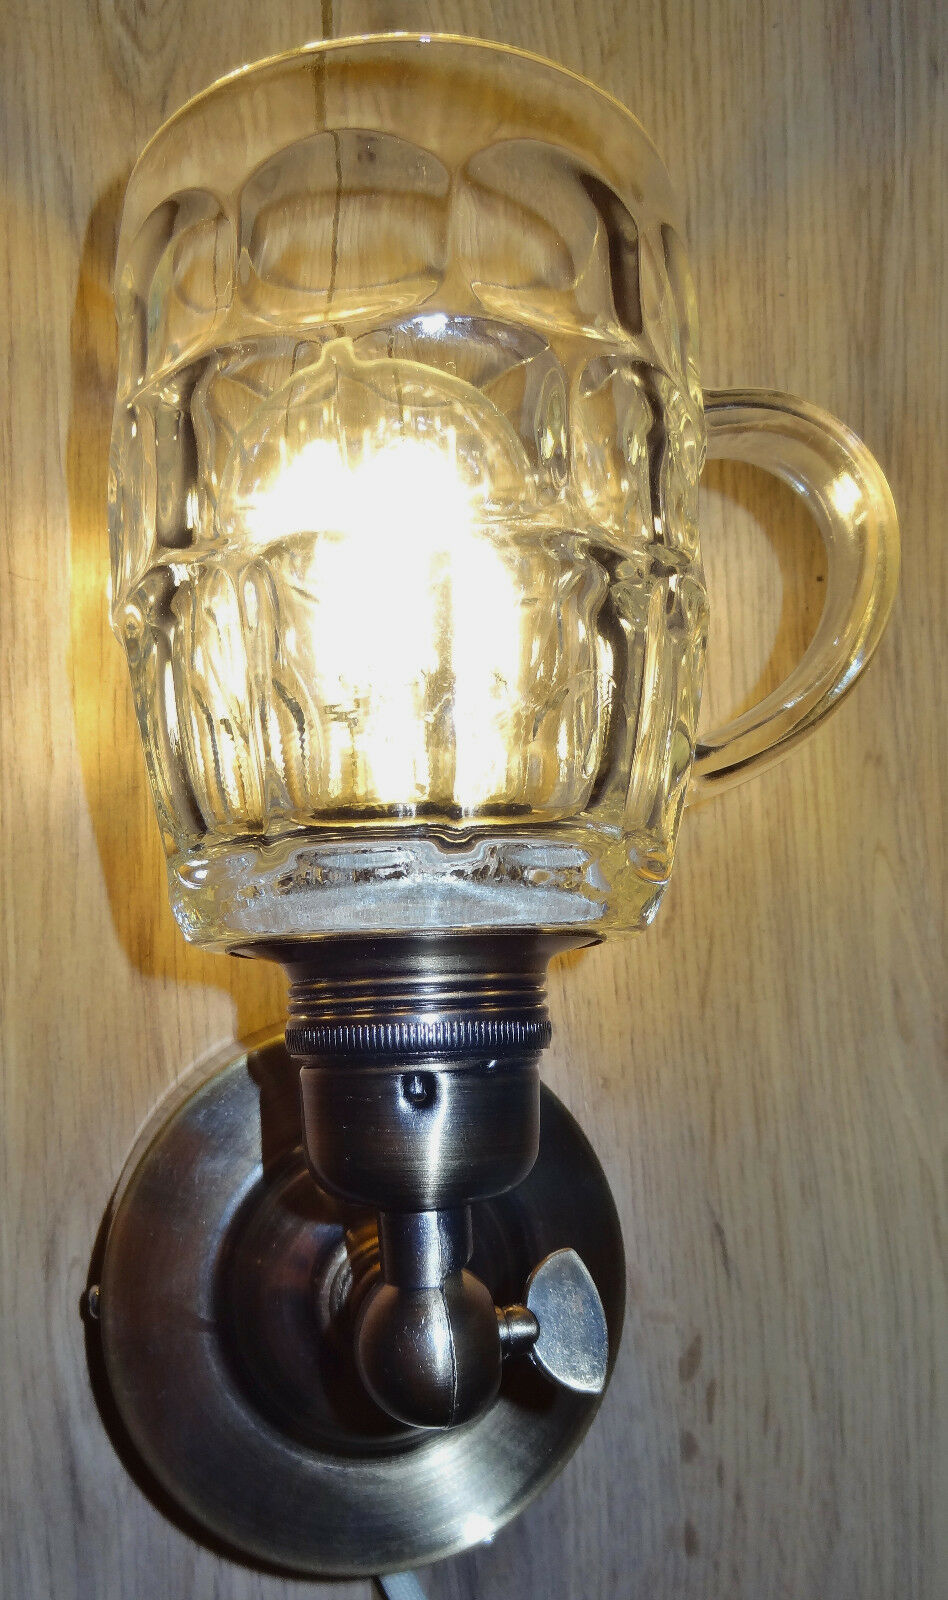 Elegant handmade upcycled Beer glass wall lamps with vintage style fittings